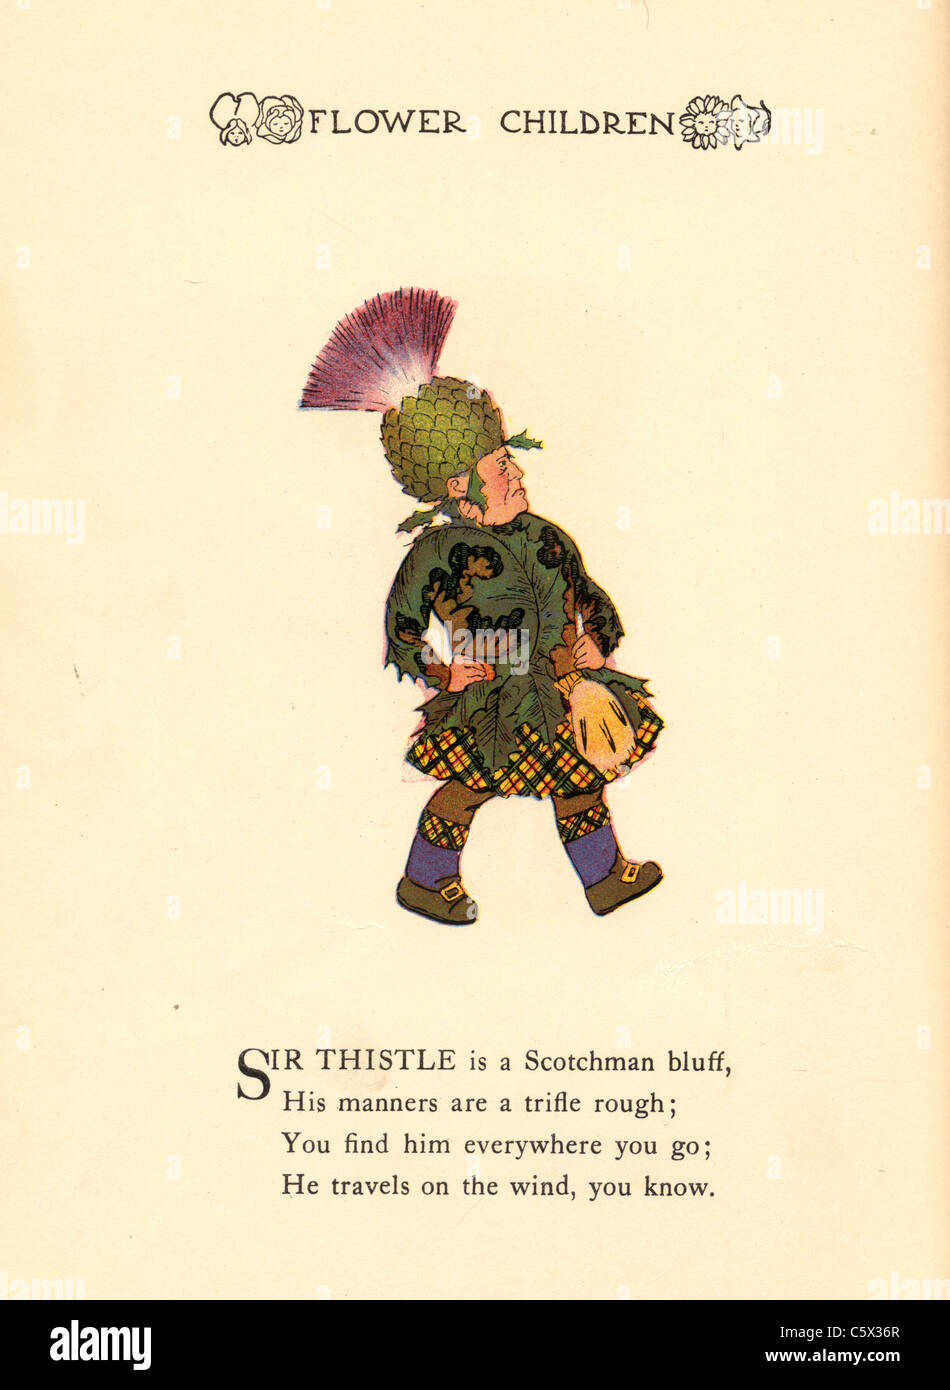 Thistle - Flower Child Illustration from an antiquarian book - Stock Image